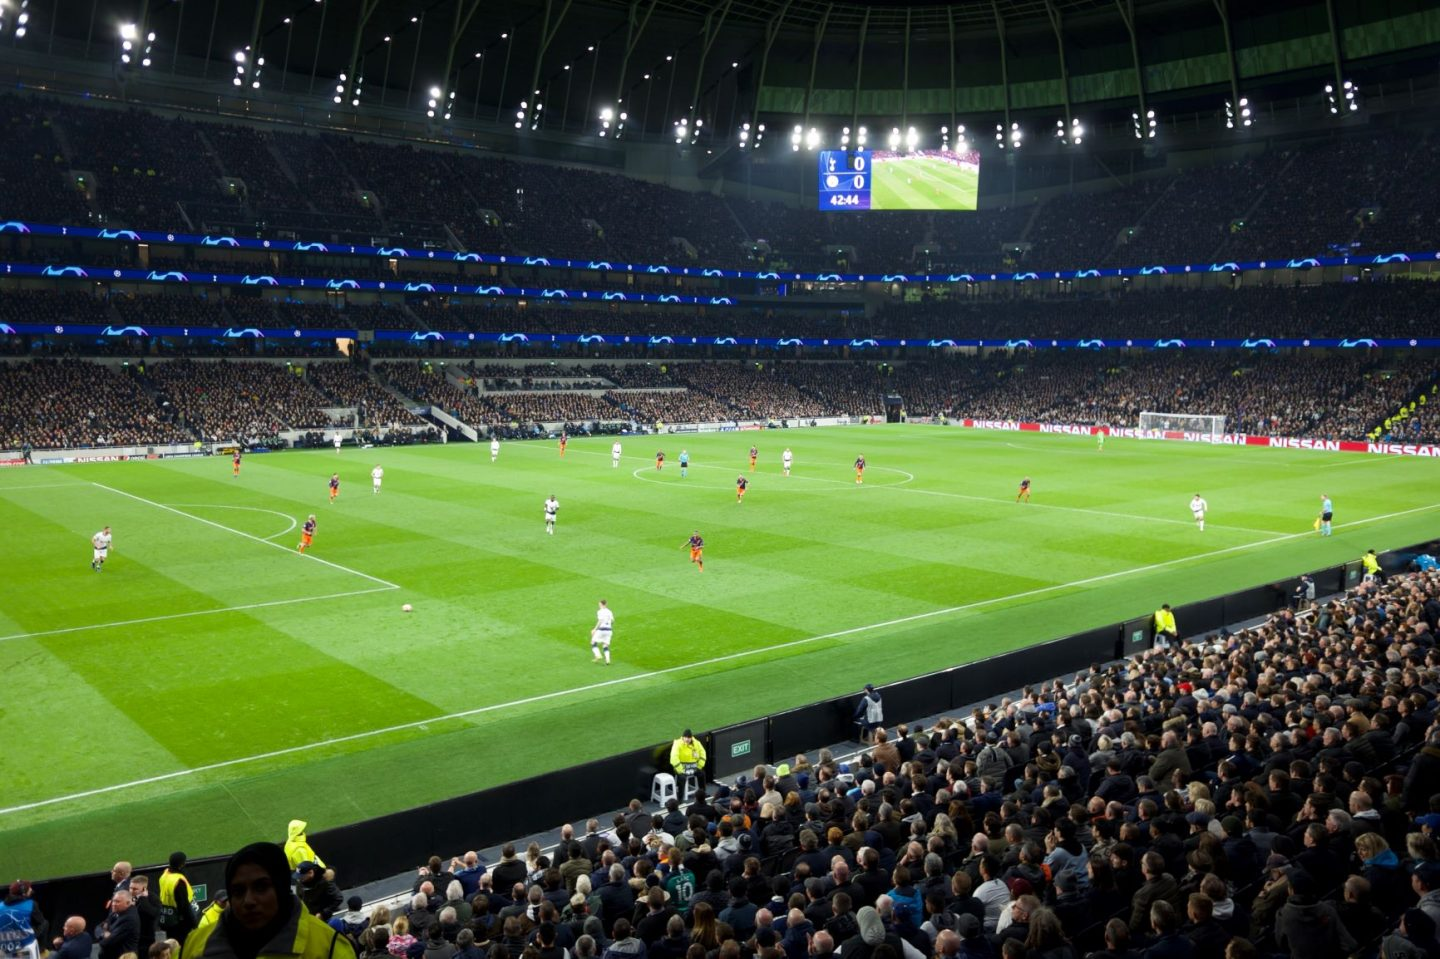 Champions League trivia questions and answers